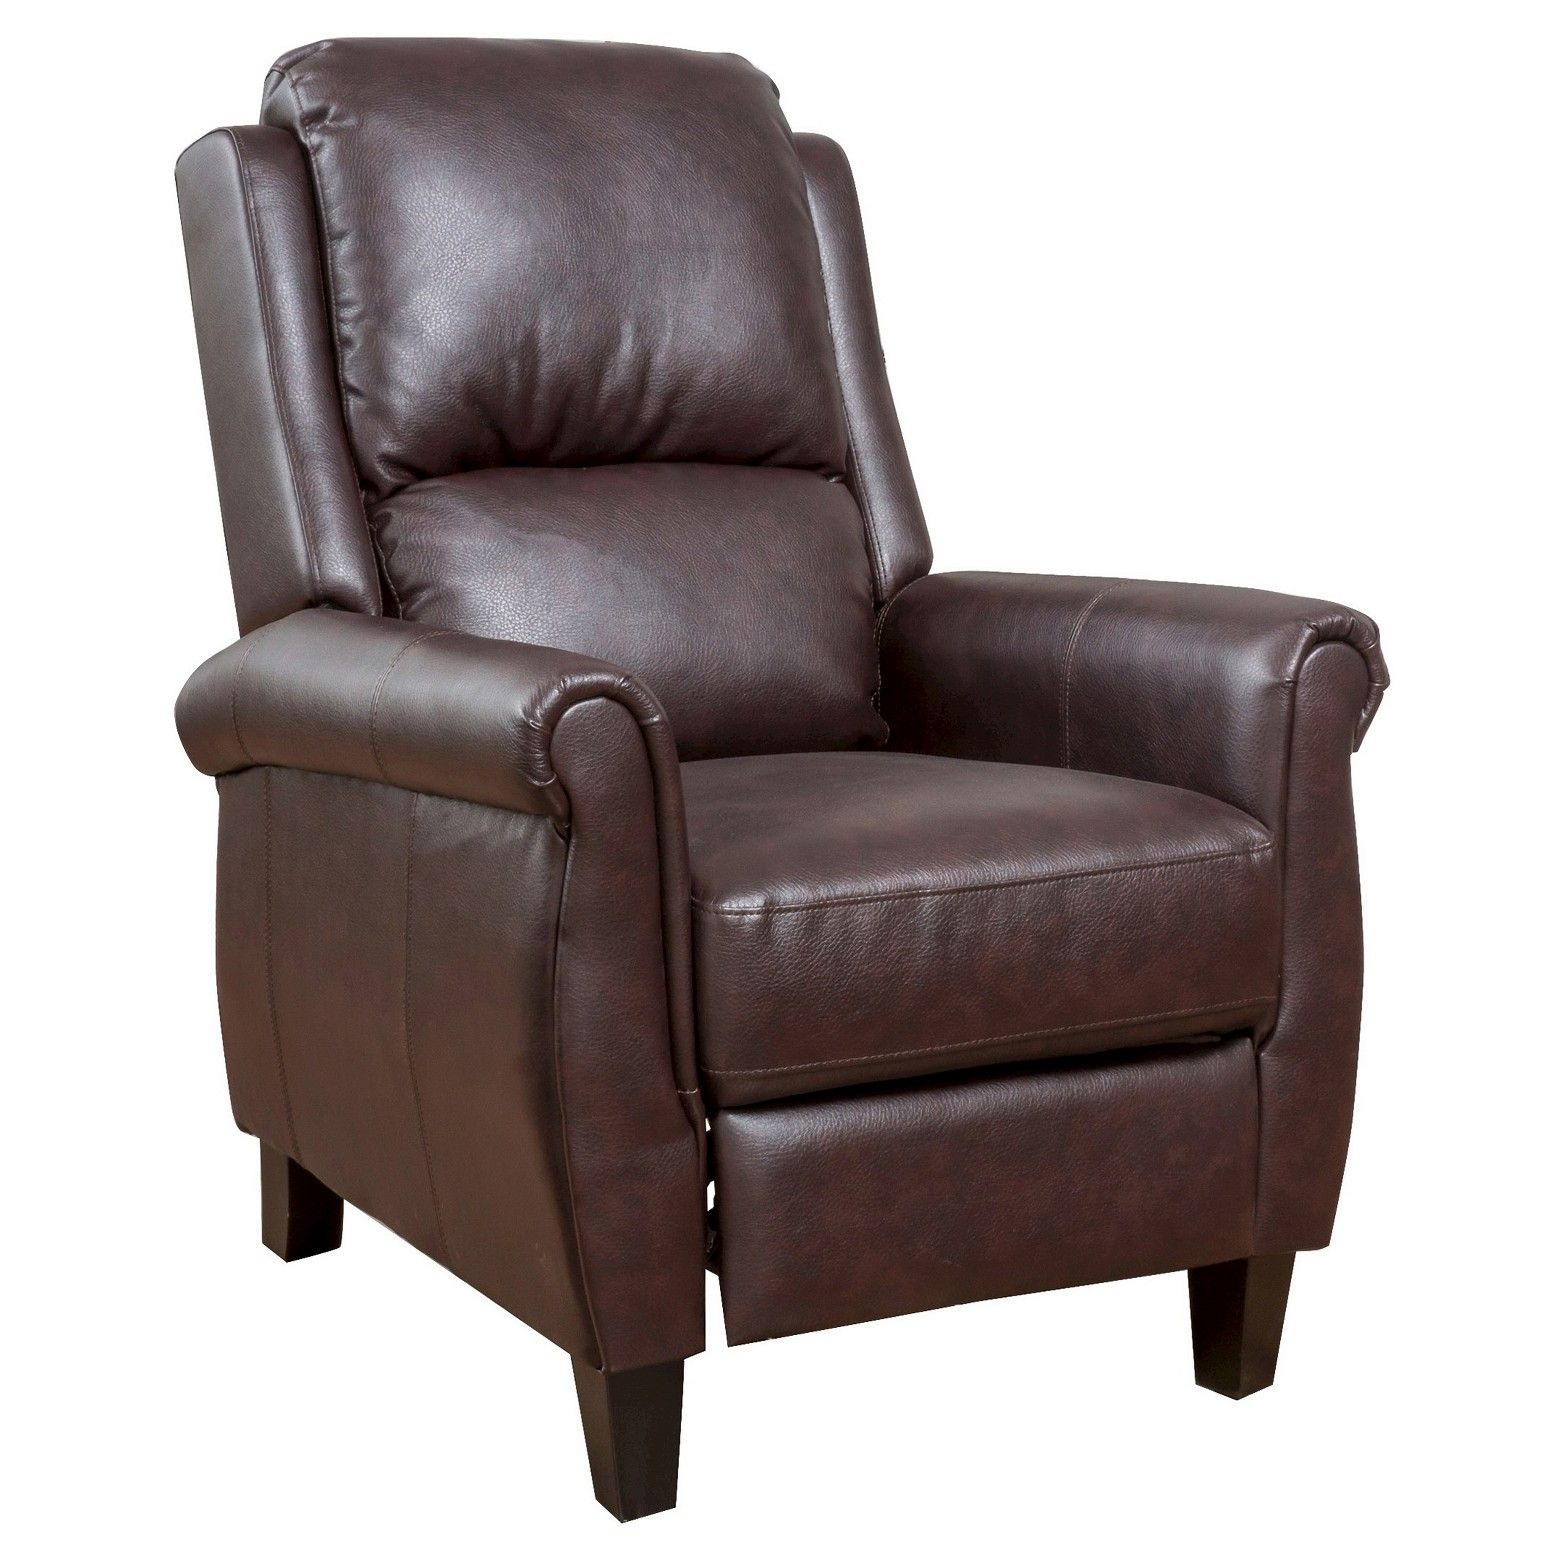 MASTER BEDtOOm To Go W/leather Chaise The Christopher Knight Home Haddan  Recliner Club Chair Is A Wonderful Addition To Any Room. Available In  Select Colors ...